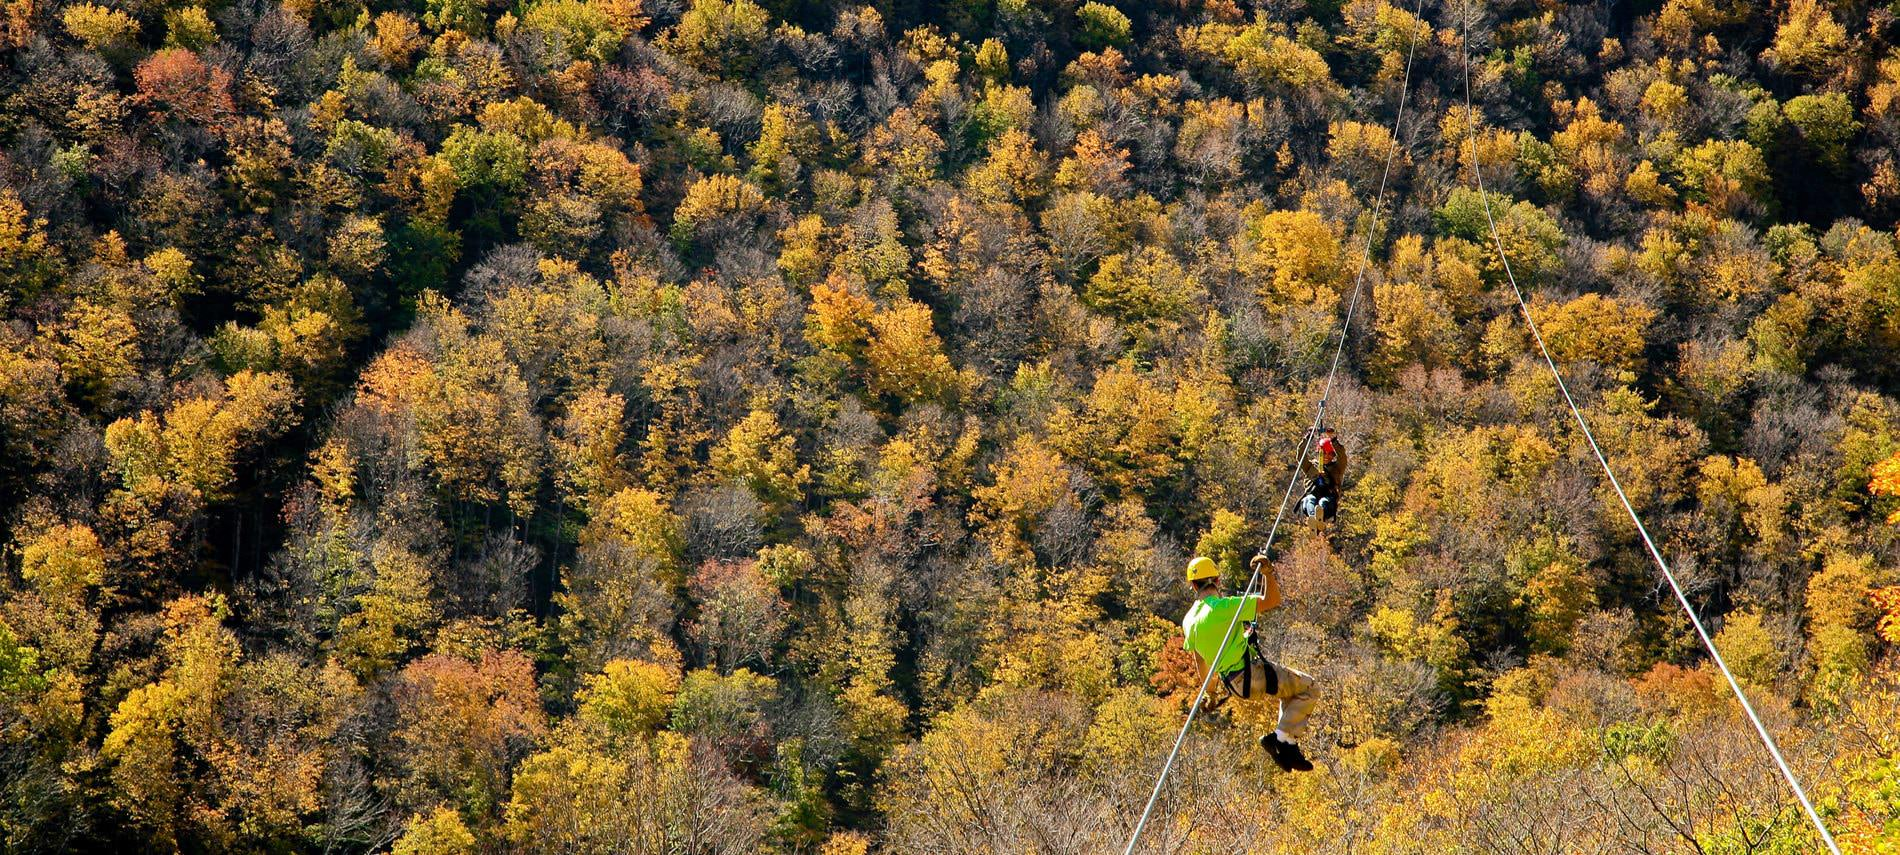 Aerial view of two people zip-lining over hundreds of trees covered in fall foliage